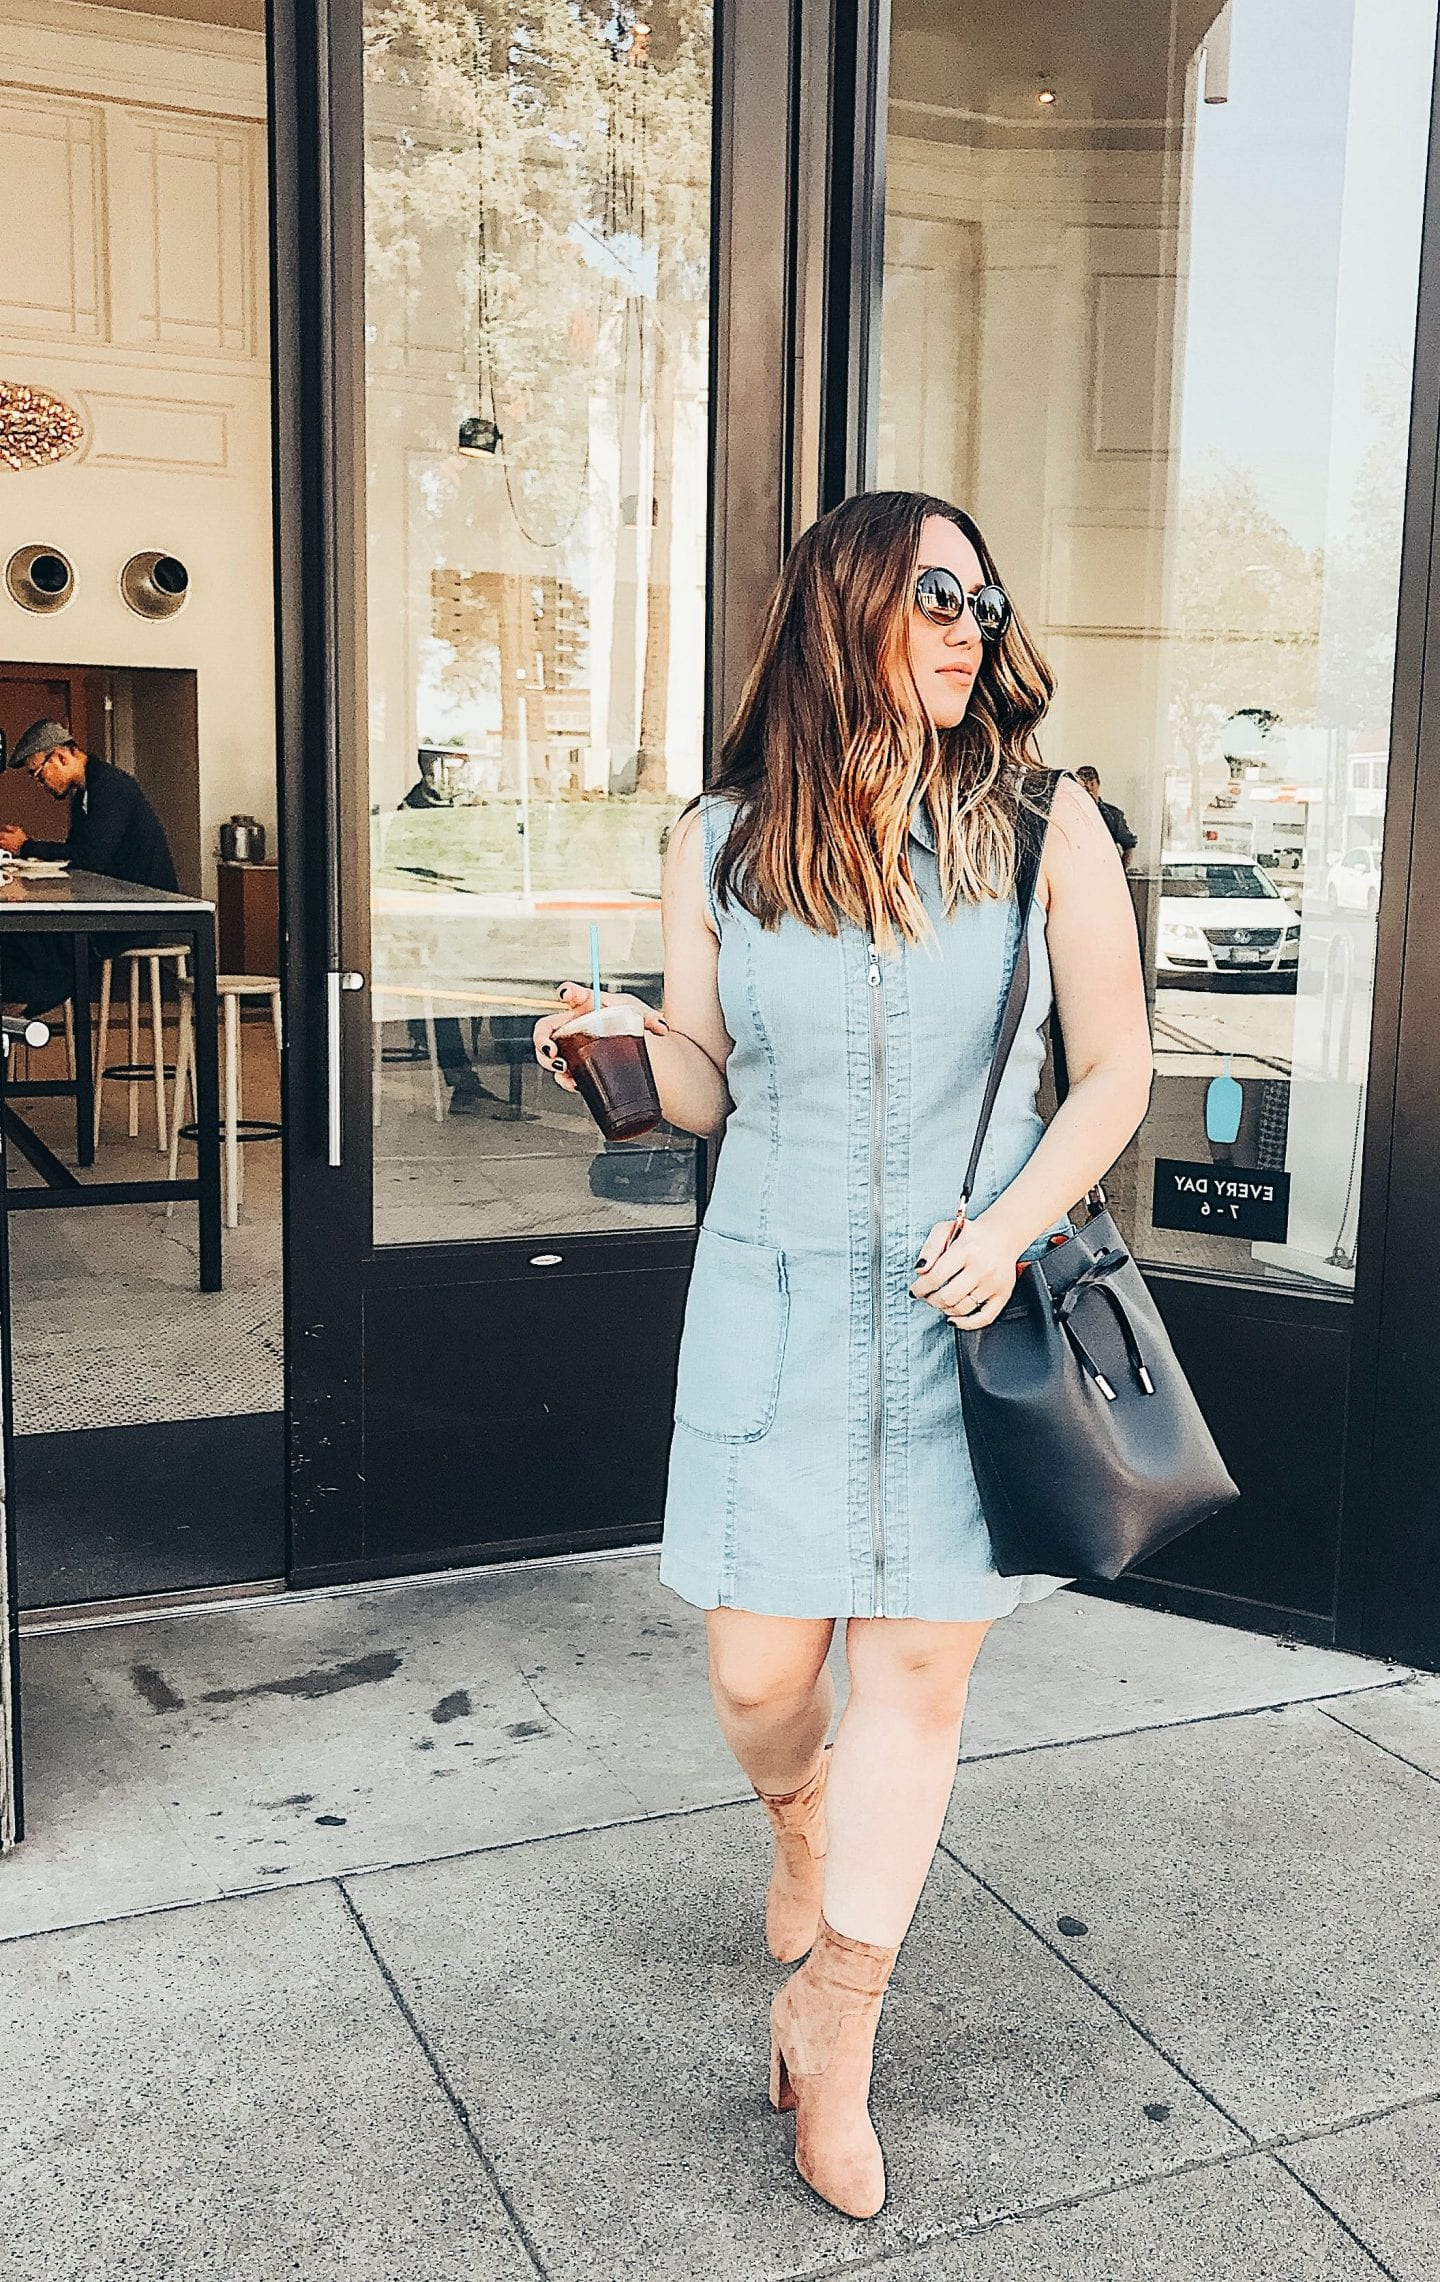 Top 10 Cute Denim Dresses for Summer I Summer Fashion I Fashion Blog I via justaddglam.com | Top 10 Cute Denim Dresses for Summer by popular San Francisco fashion blog, Just Add Glam: image of a woman standing outside in front of a restaurant wearing a sleeveless denim dress and tan suede ankle boots.